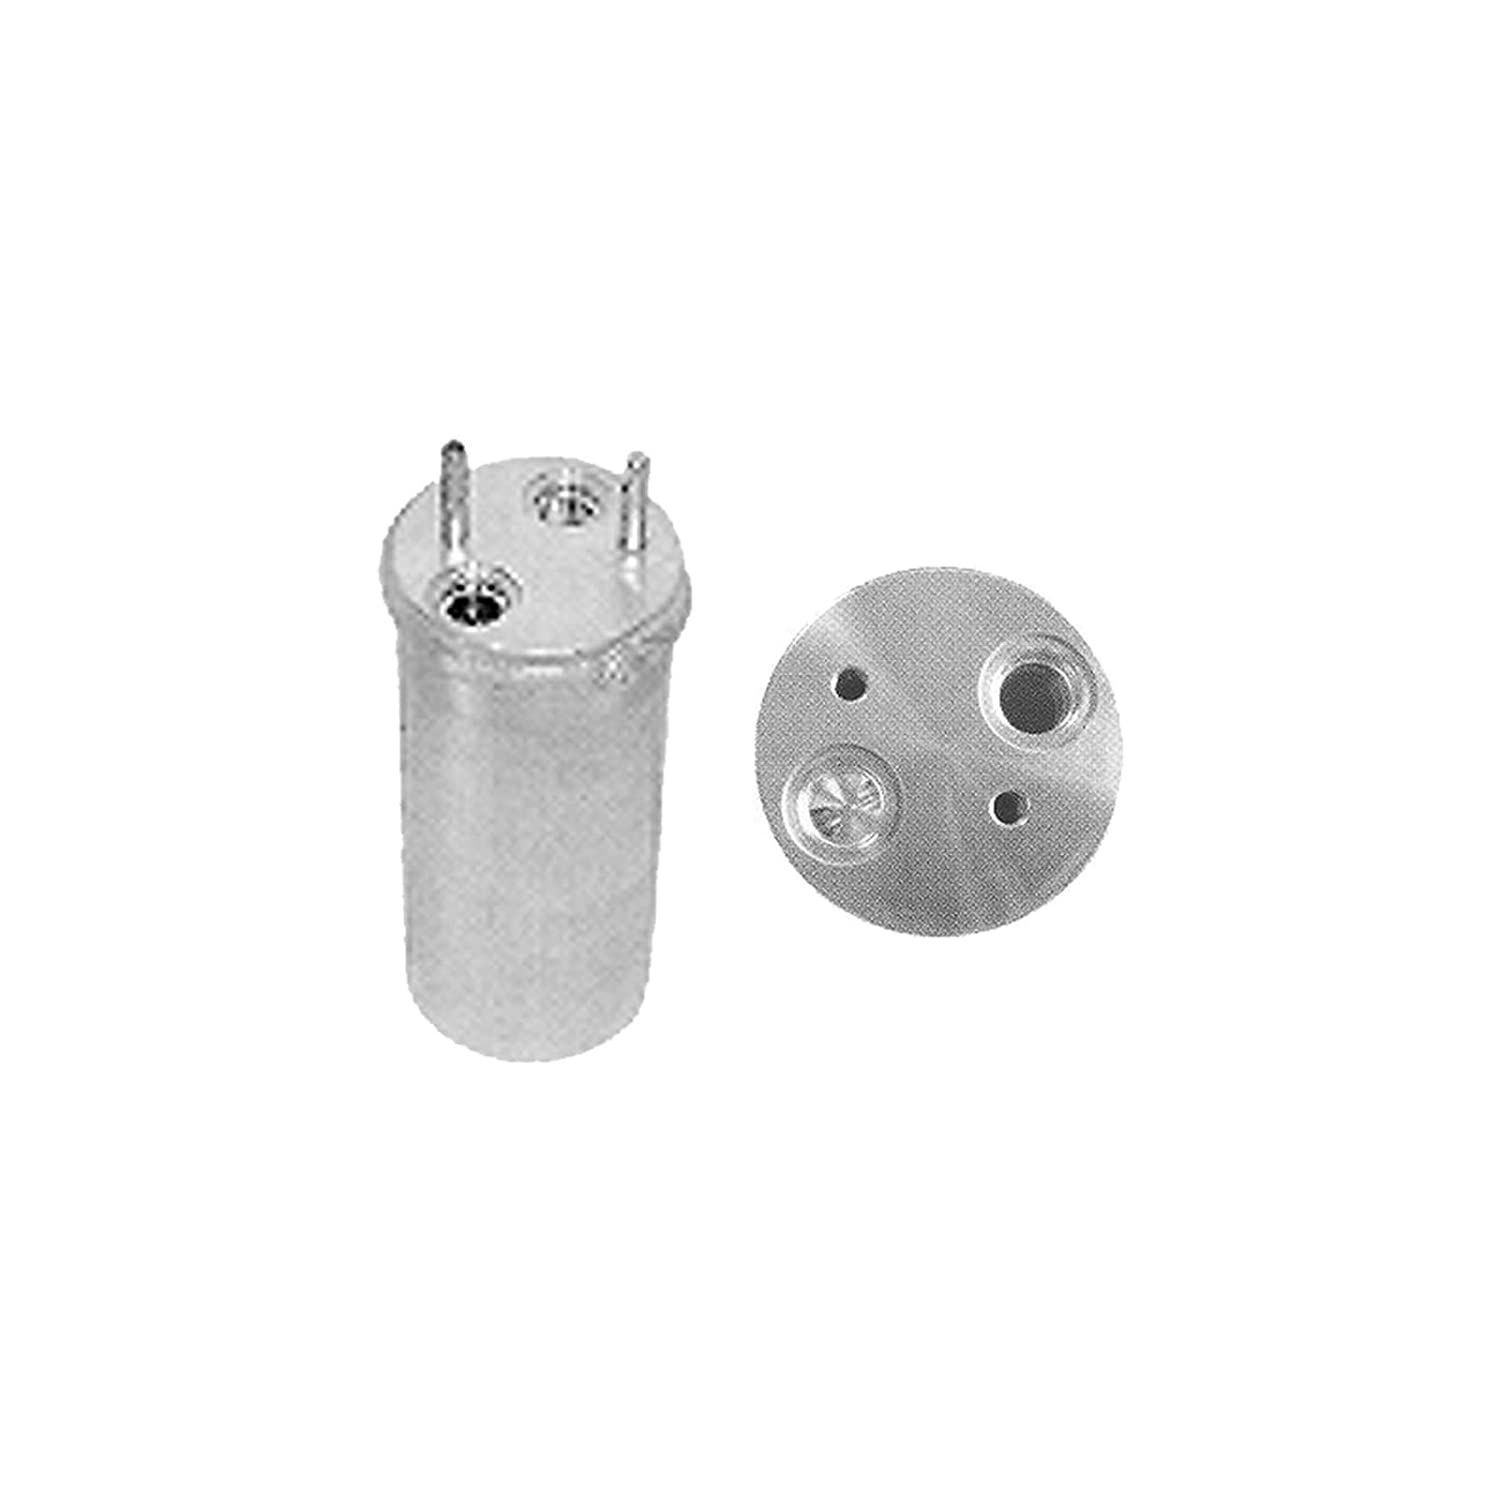 Delphi TSP0175107 Air Conditioning Component